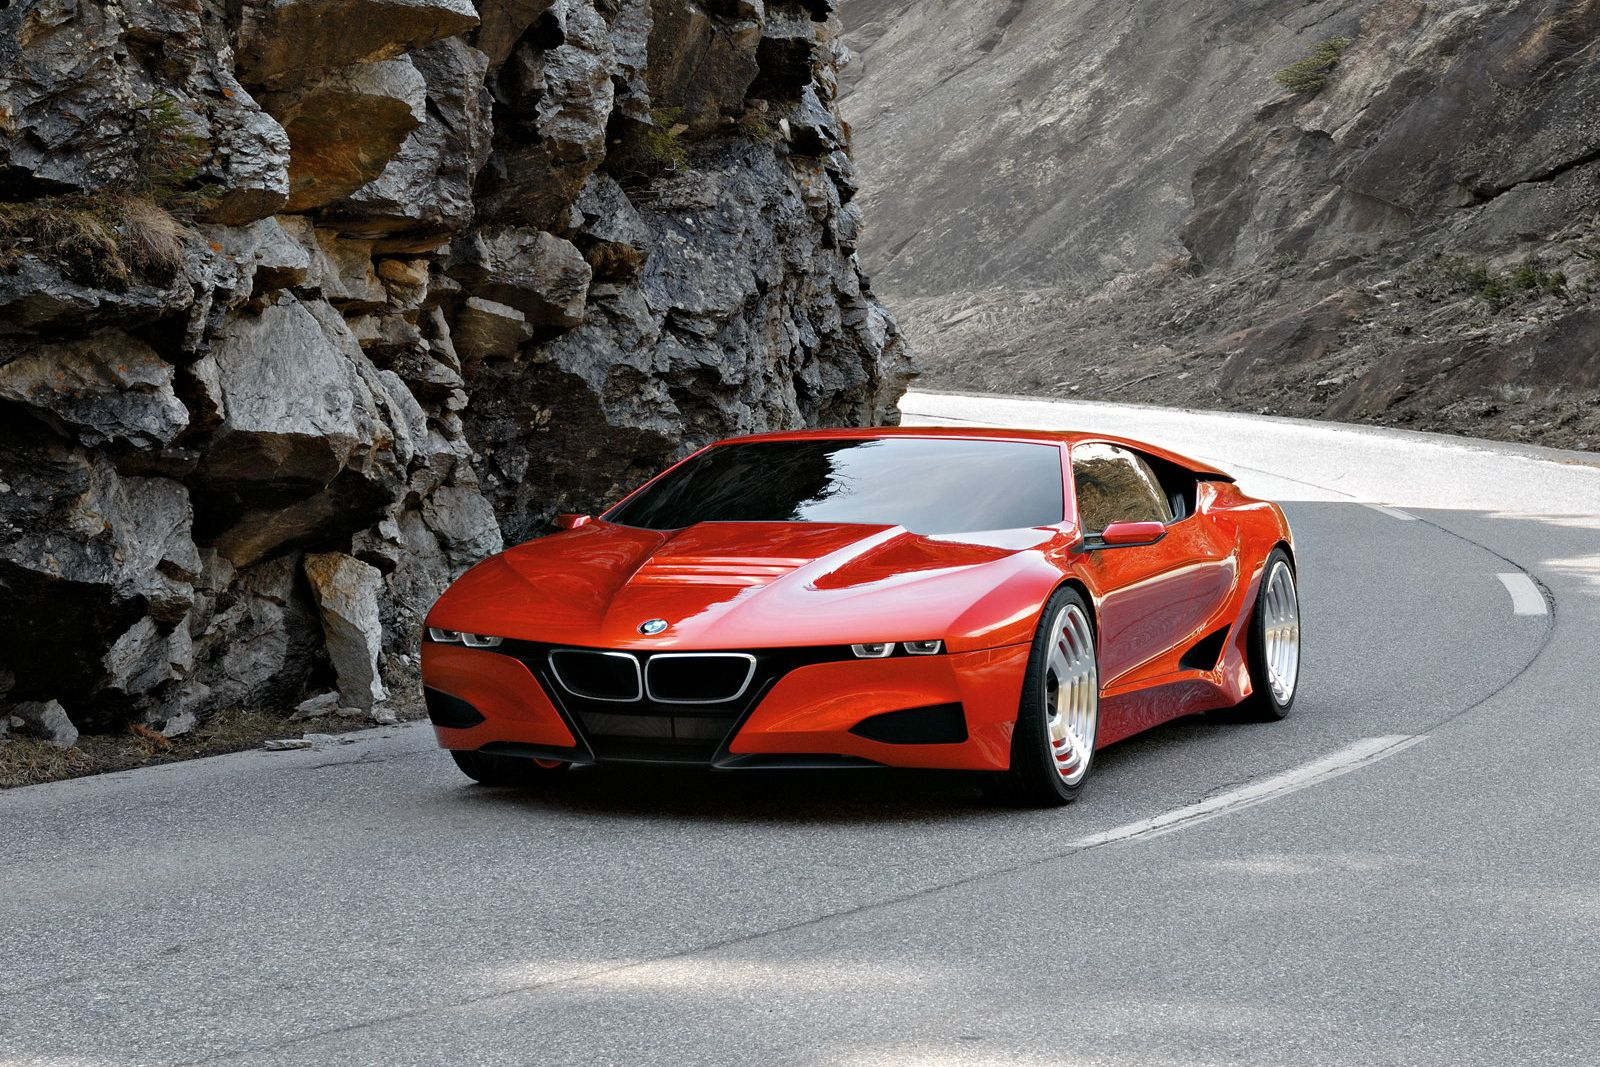 German Media Churns Out Rumor Of Possible Bmw I9 Model In The Works Carscoops Bmw M1 Super Sport Cars Sports Car